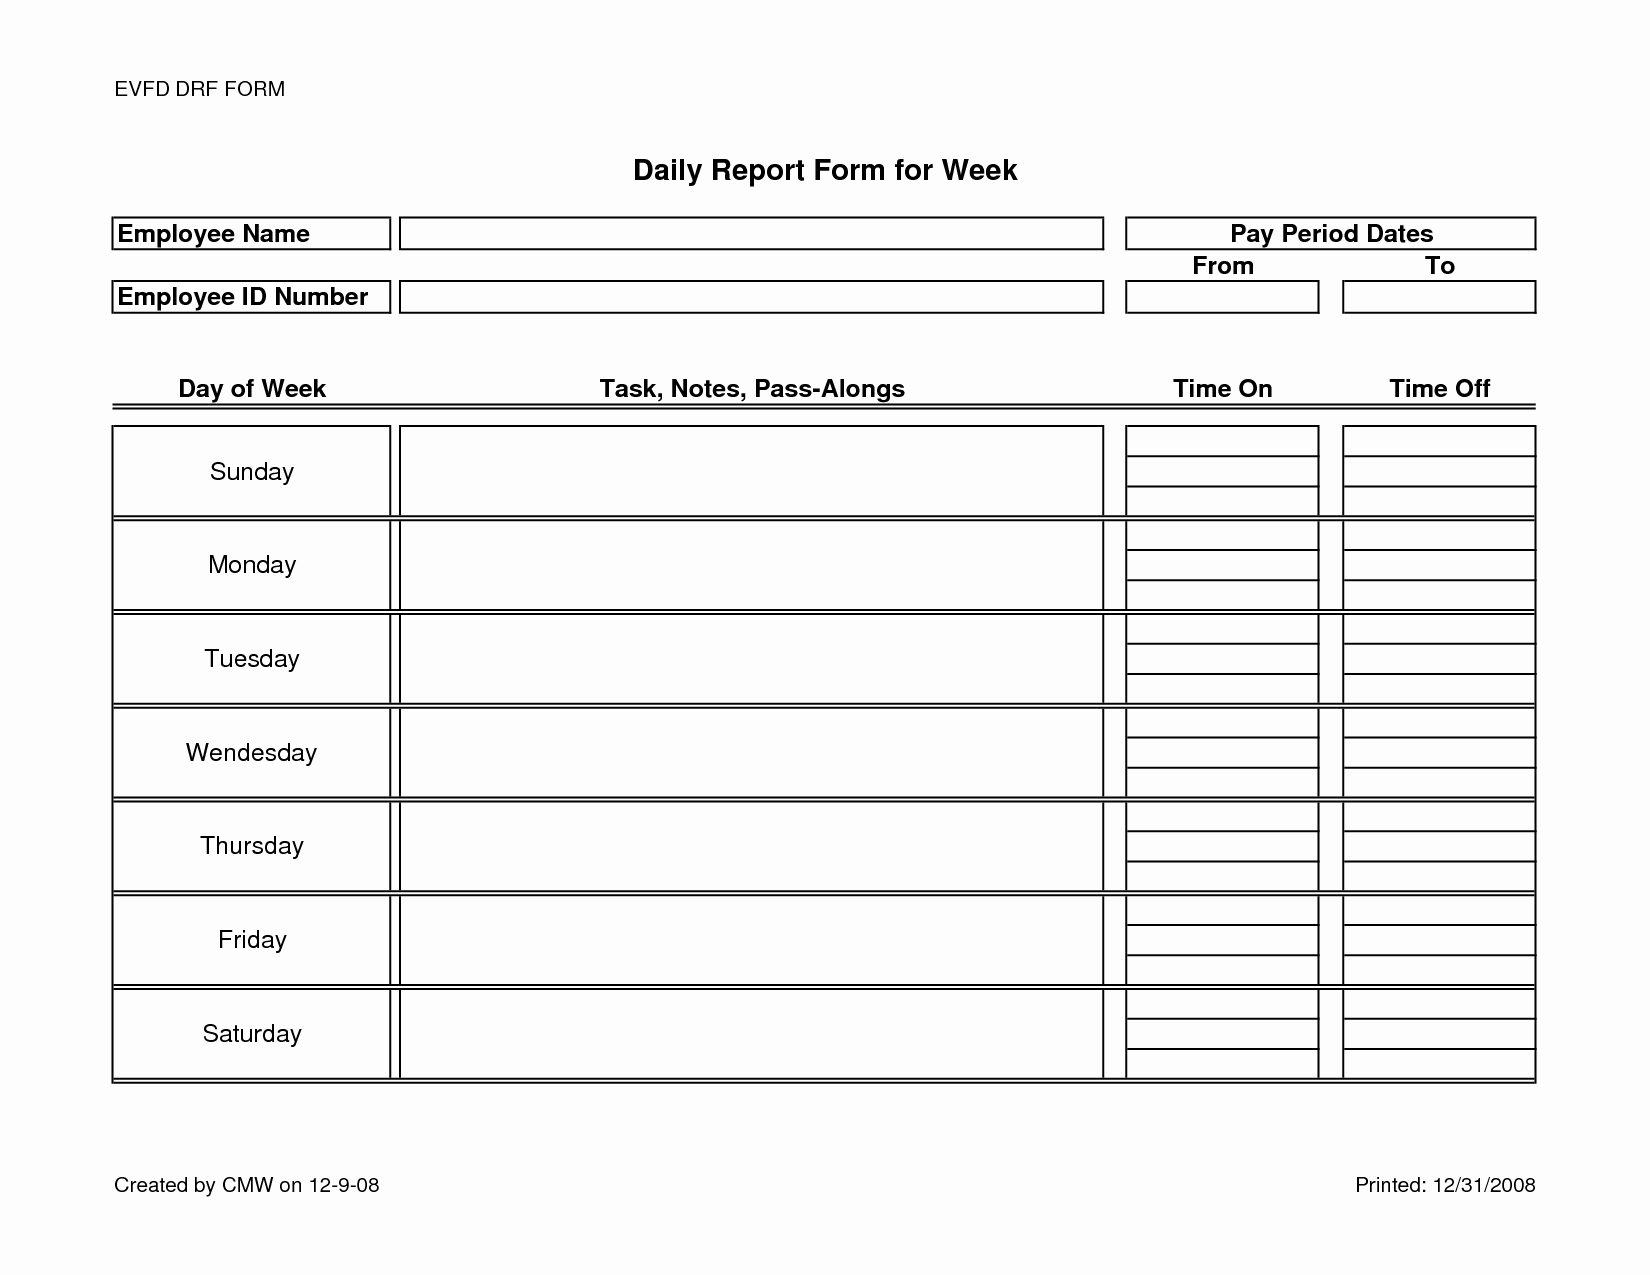 Daily Report Template Word Awesome Weekly Work Report Template Portablegasgrillweber